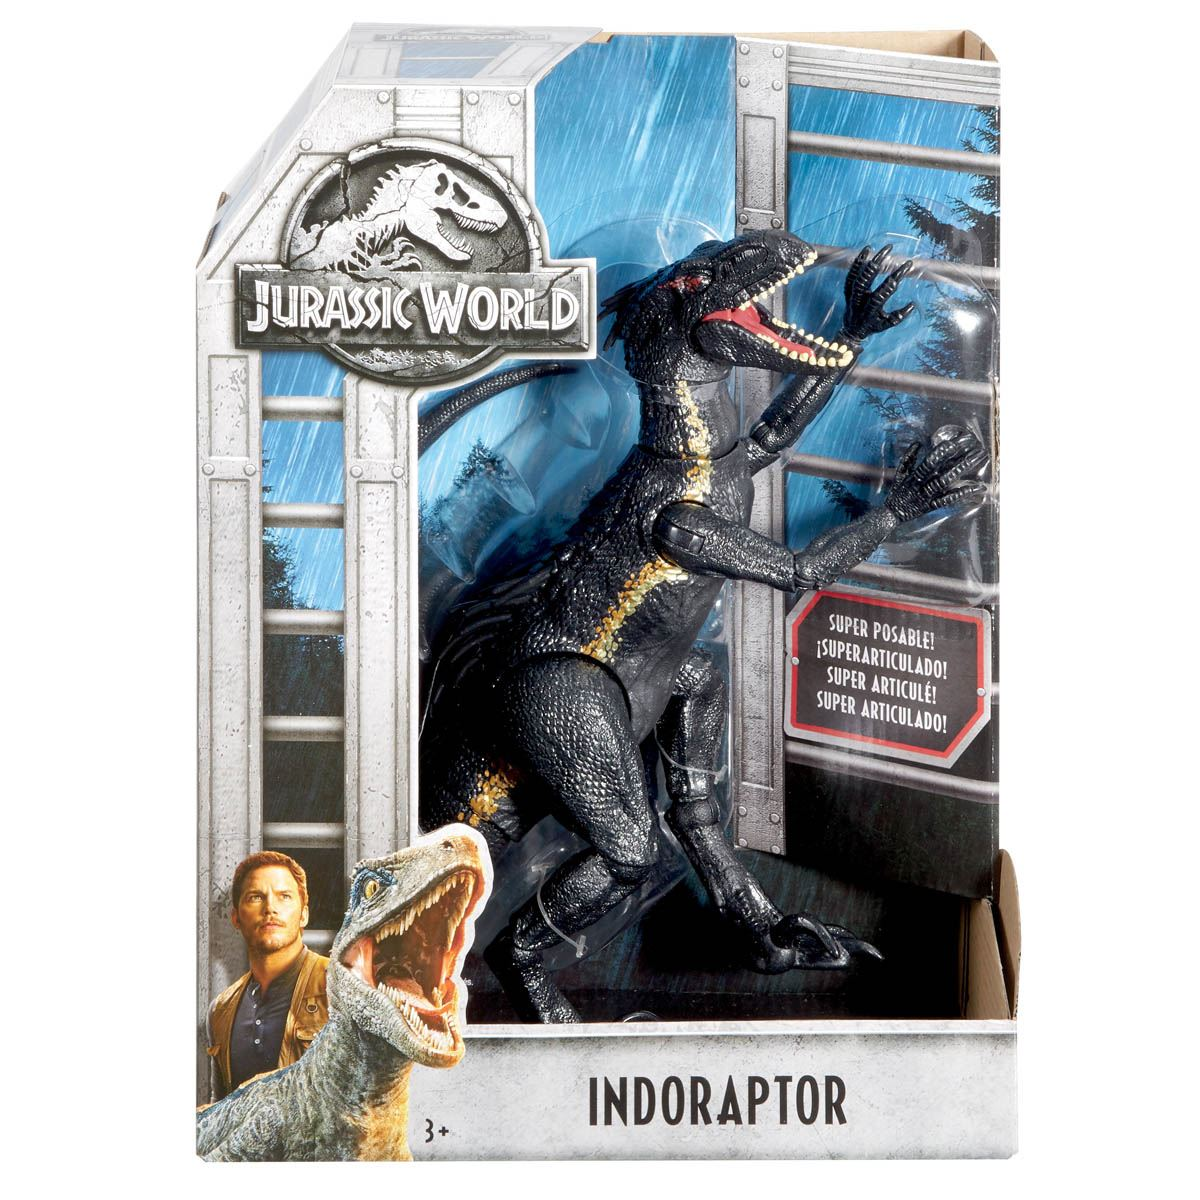 Jurassic World Dino Villano